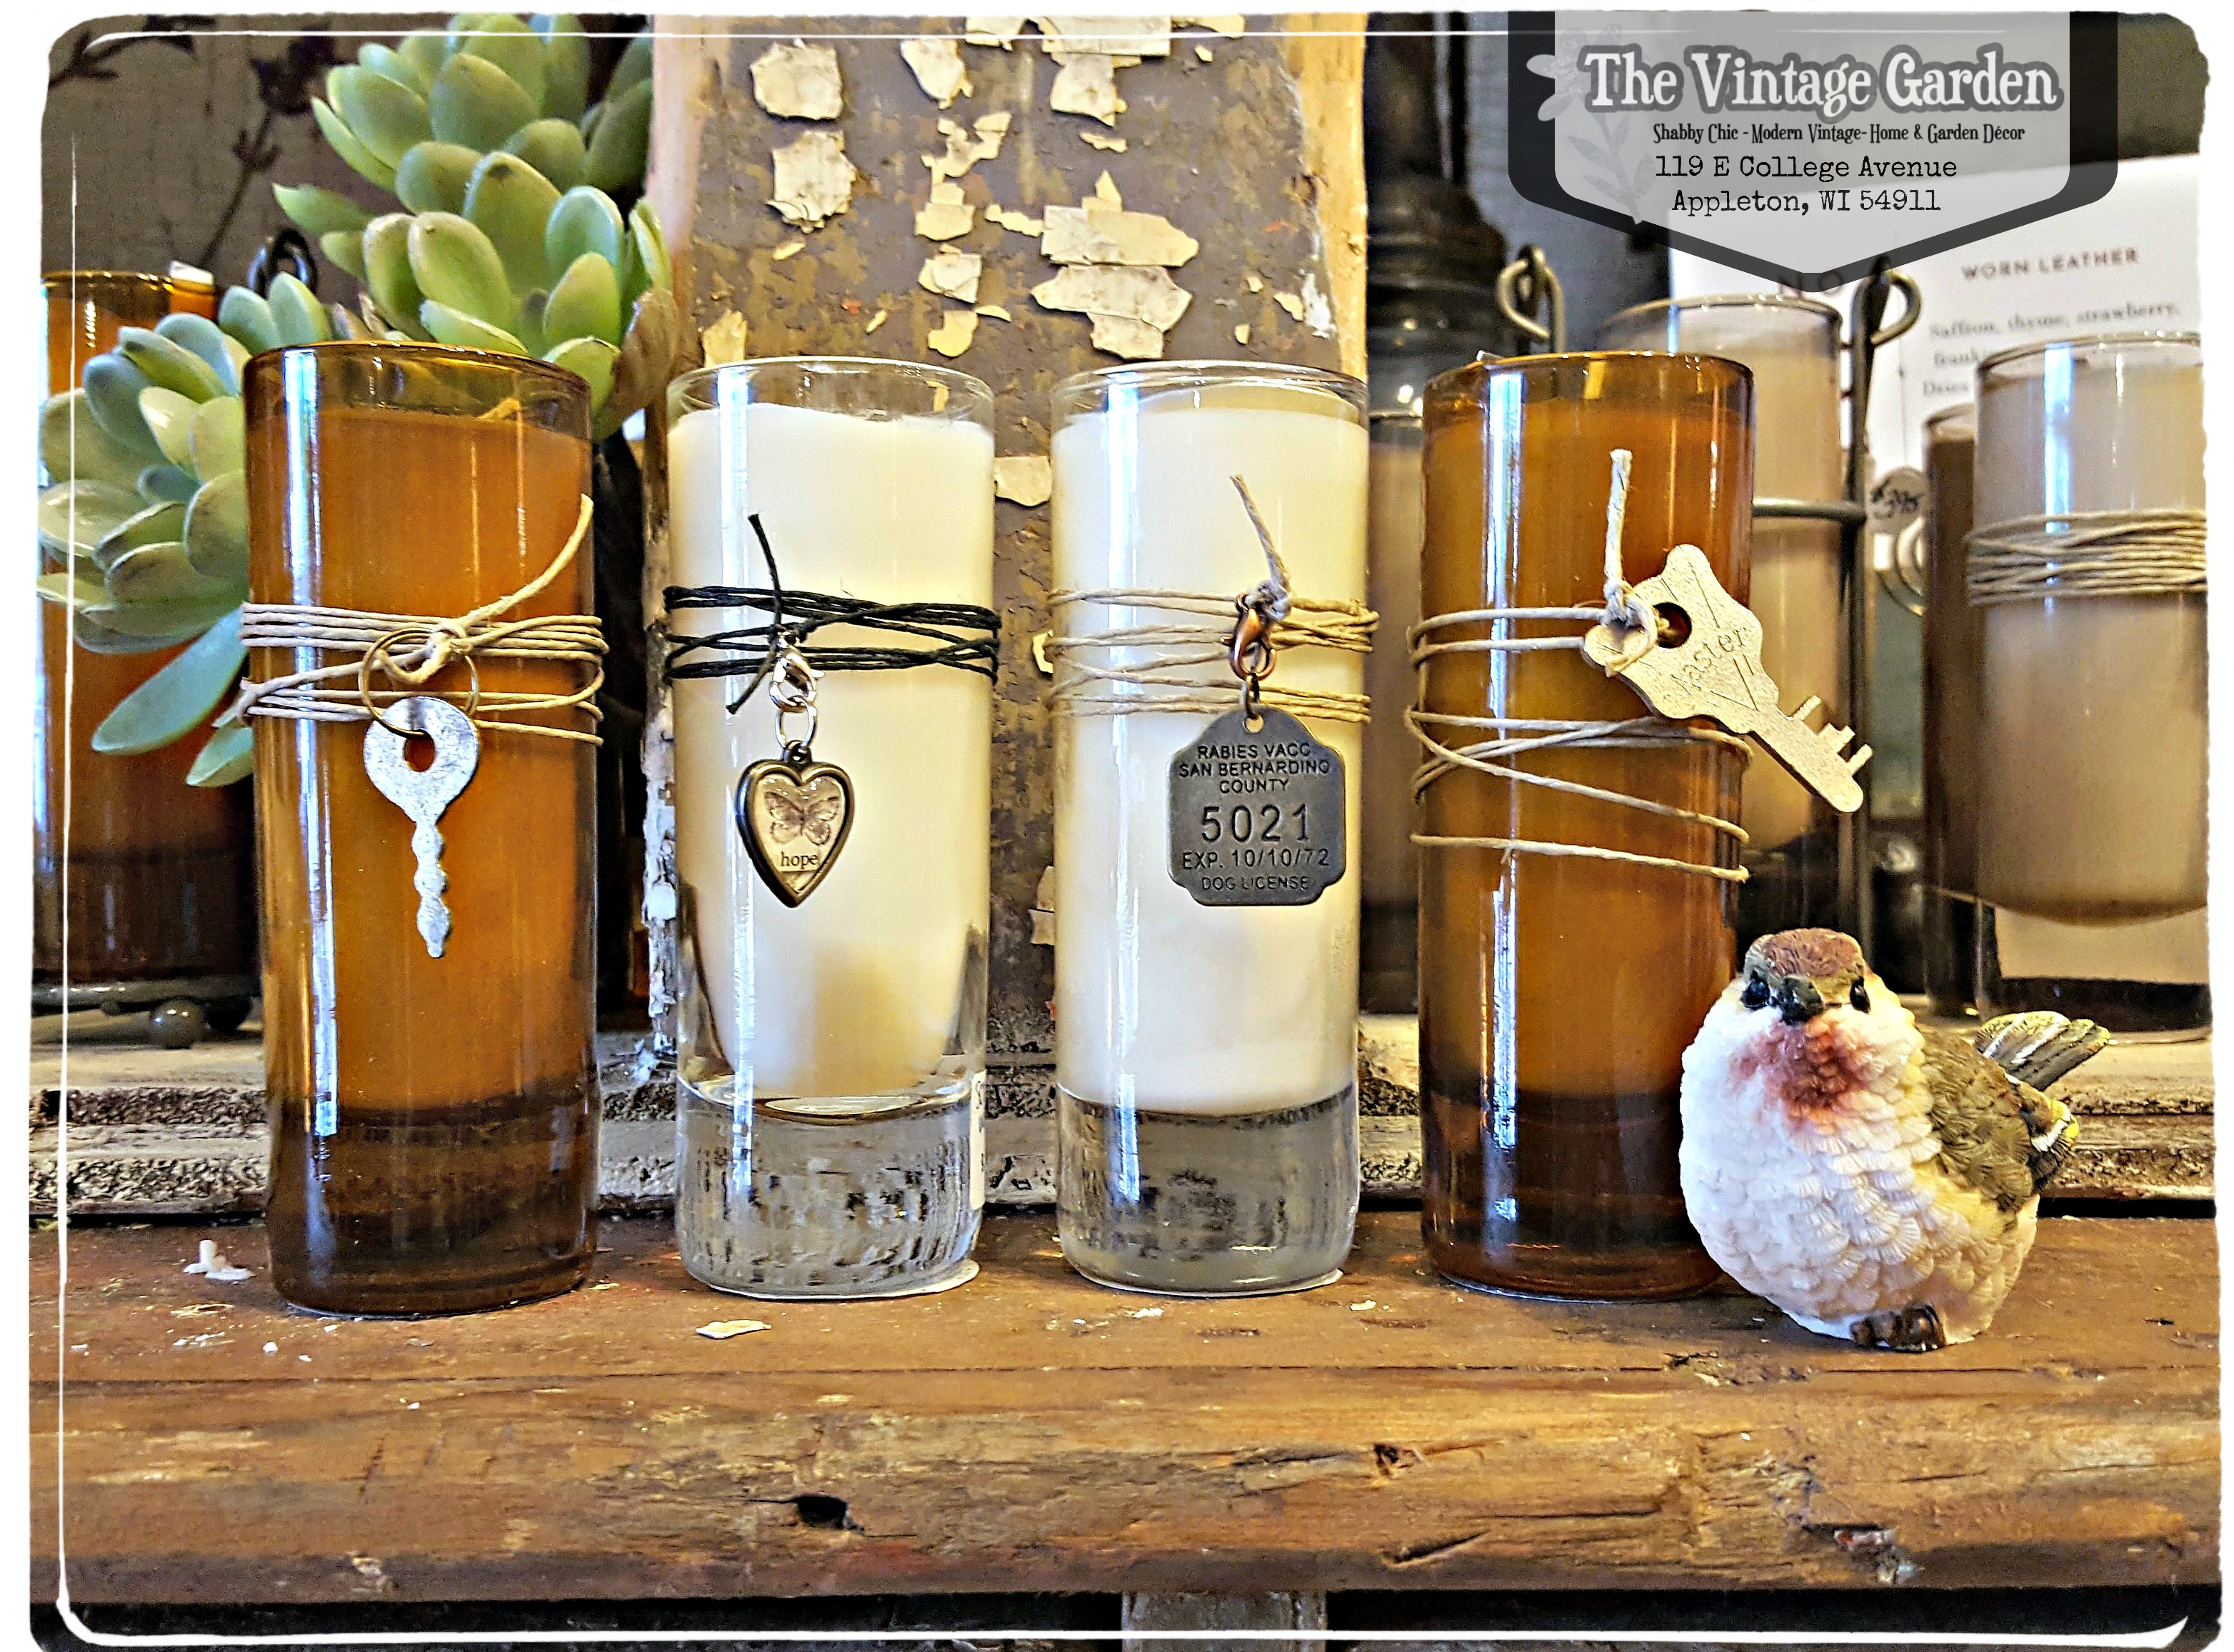 Offerings at The Vintage Garden!